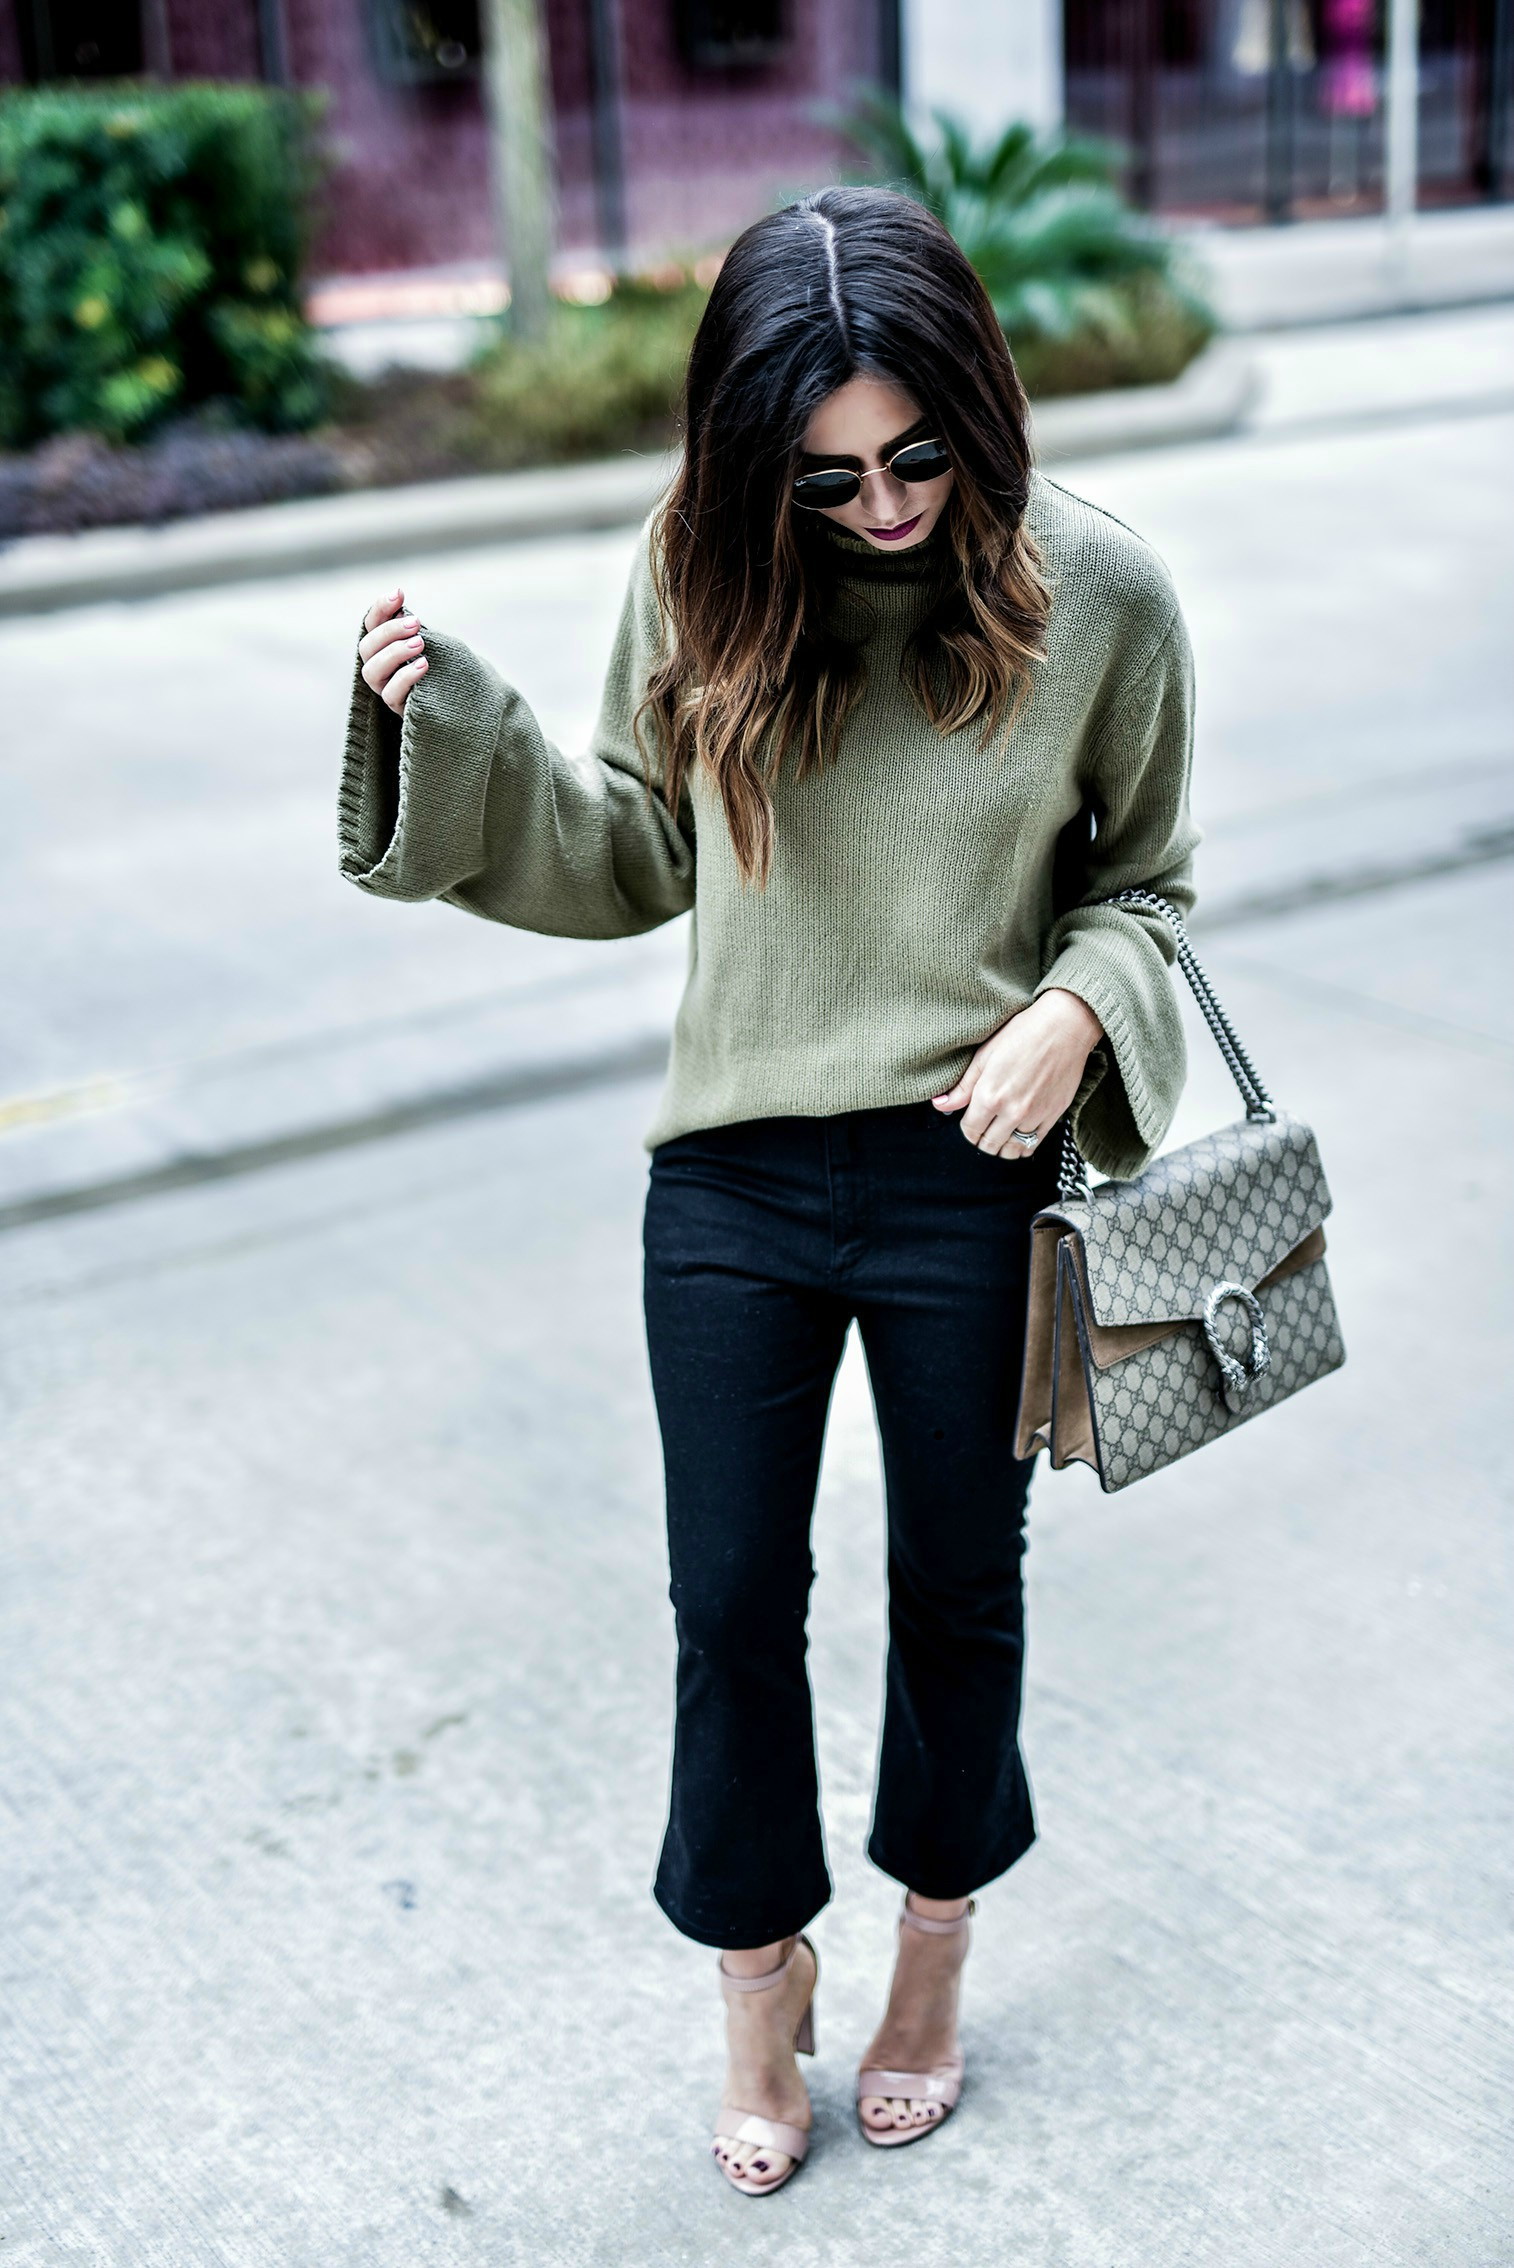 Tiffany Jais Houston fashion and lifestyle blogger Wearing a bell sleeve sweater in olive, and black denim flare cropped jeans | Gucci Dionysus bag, what's trending